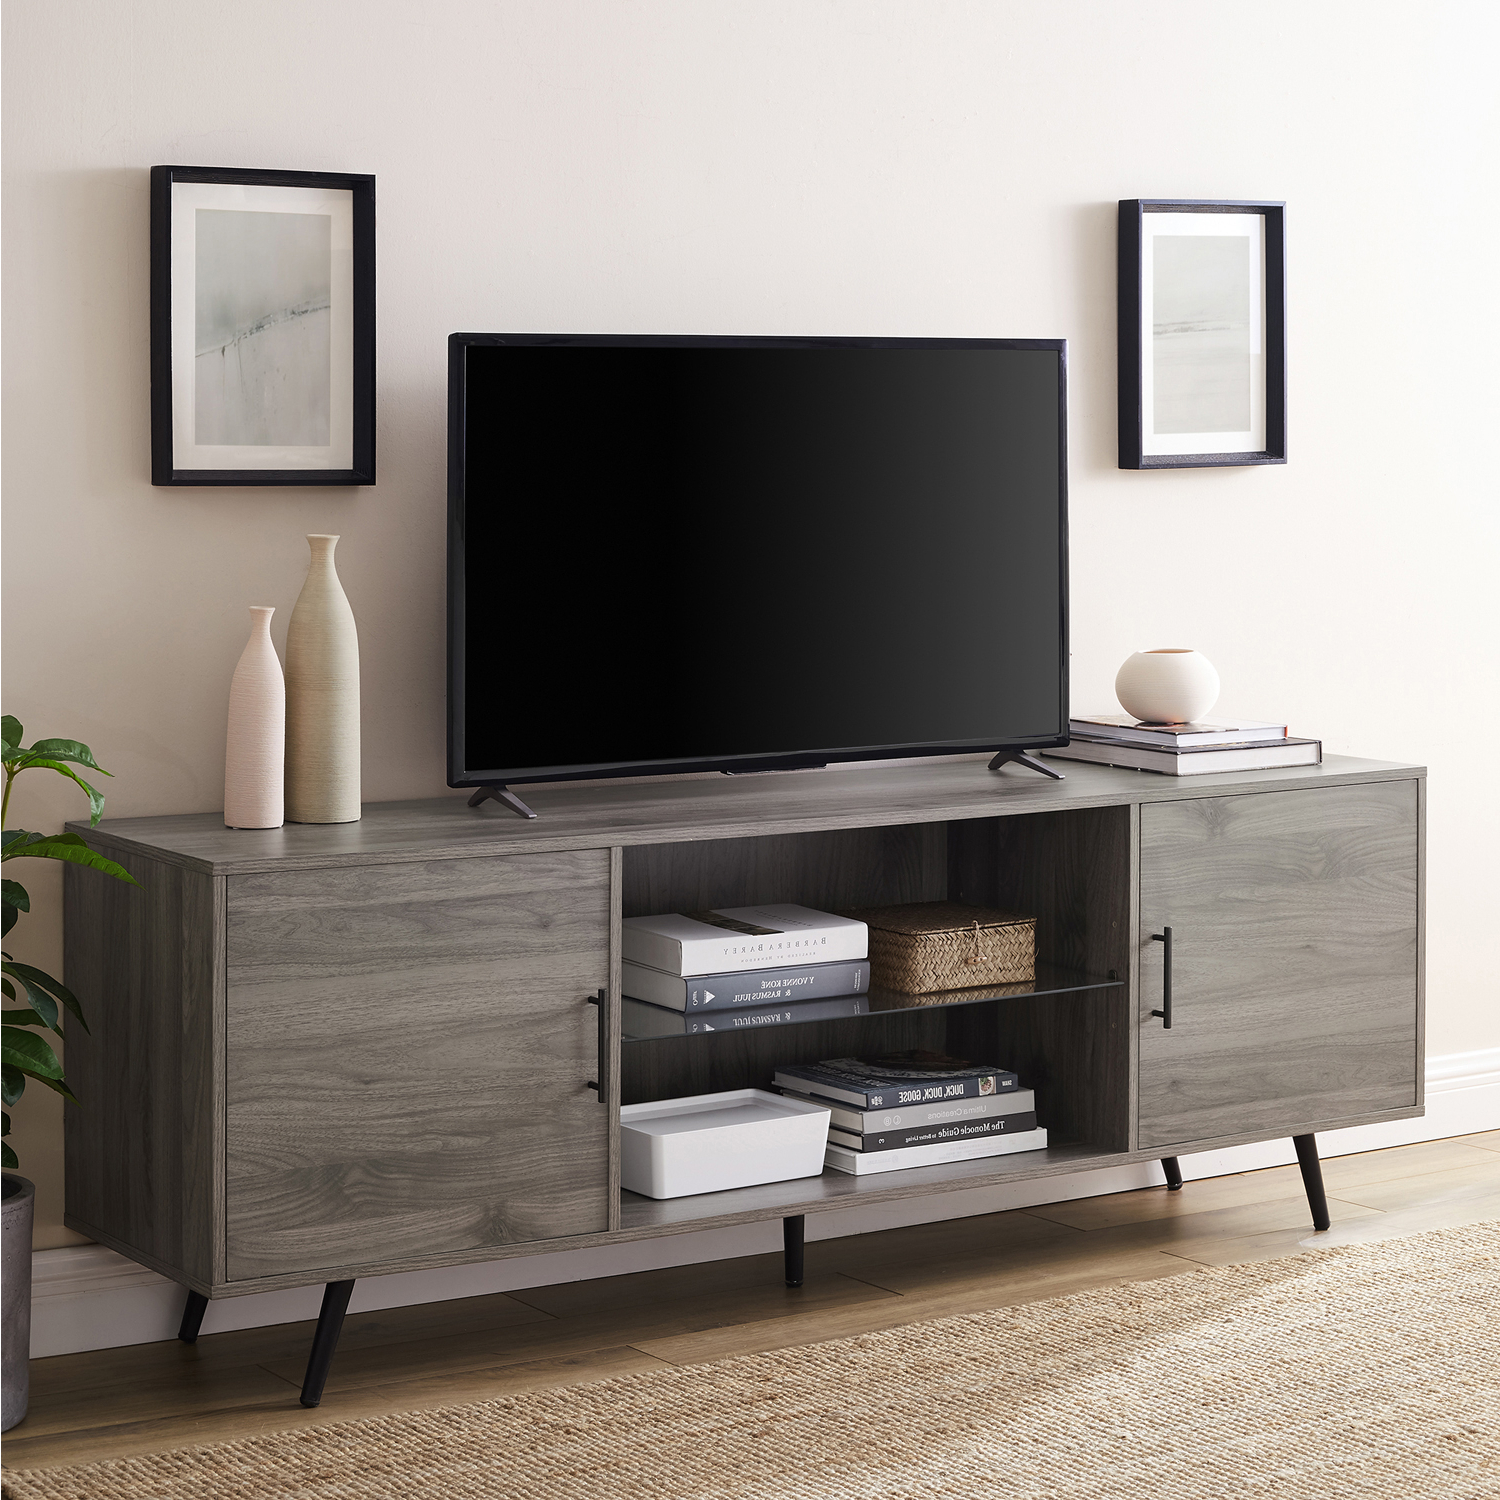 Wide Tv Stand With Glass Shelf – Pier1 Within Greenwich Wide Tv Stands (View 6 of 20)